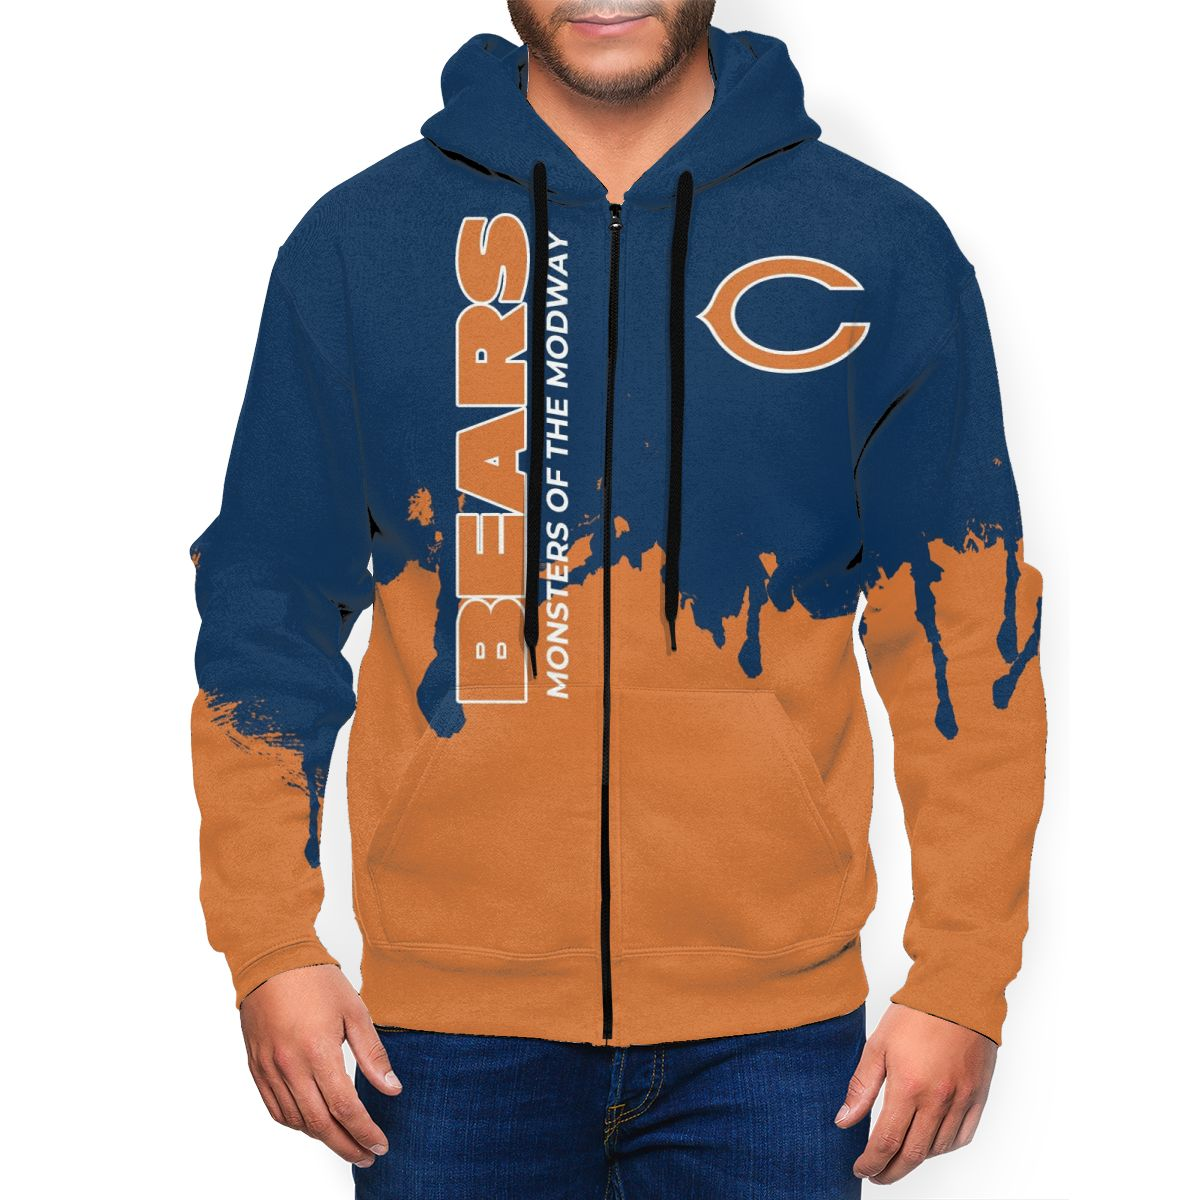 Bears Team Men's Zip Hooded Sweatshirt